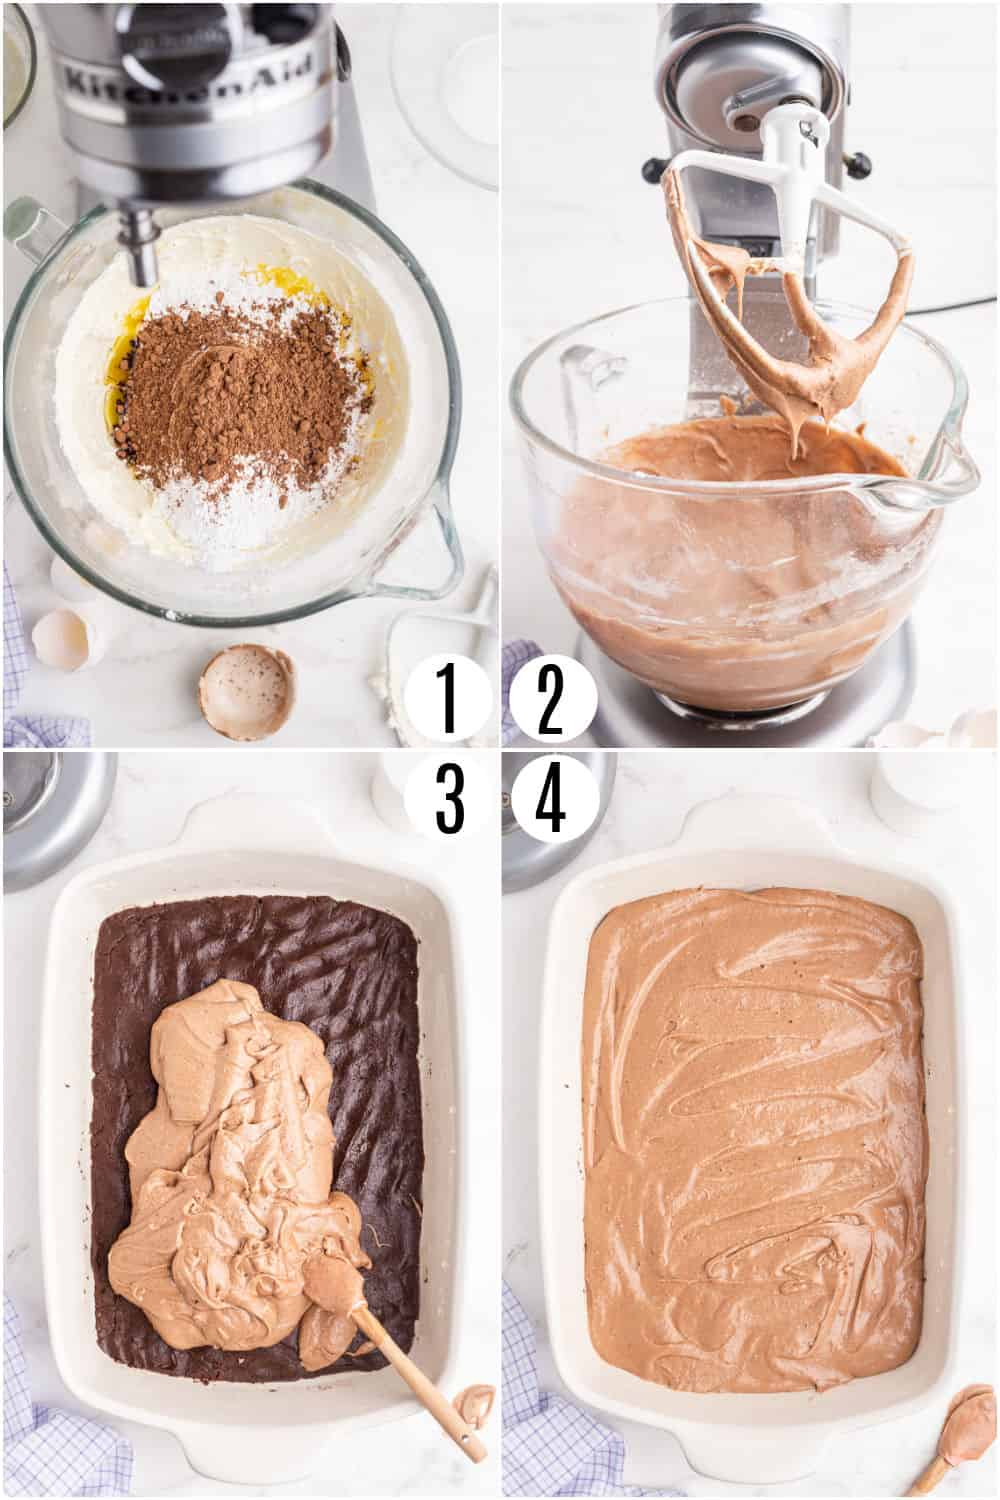 Step by step photos showing how to make the top layer of gooey brownies.